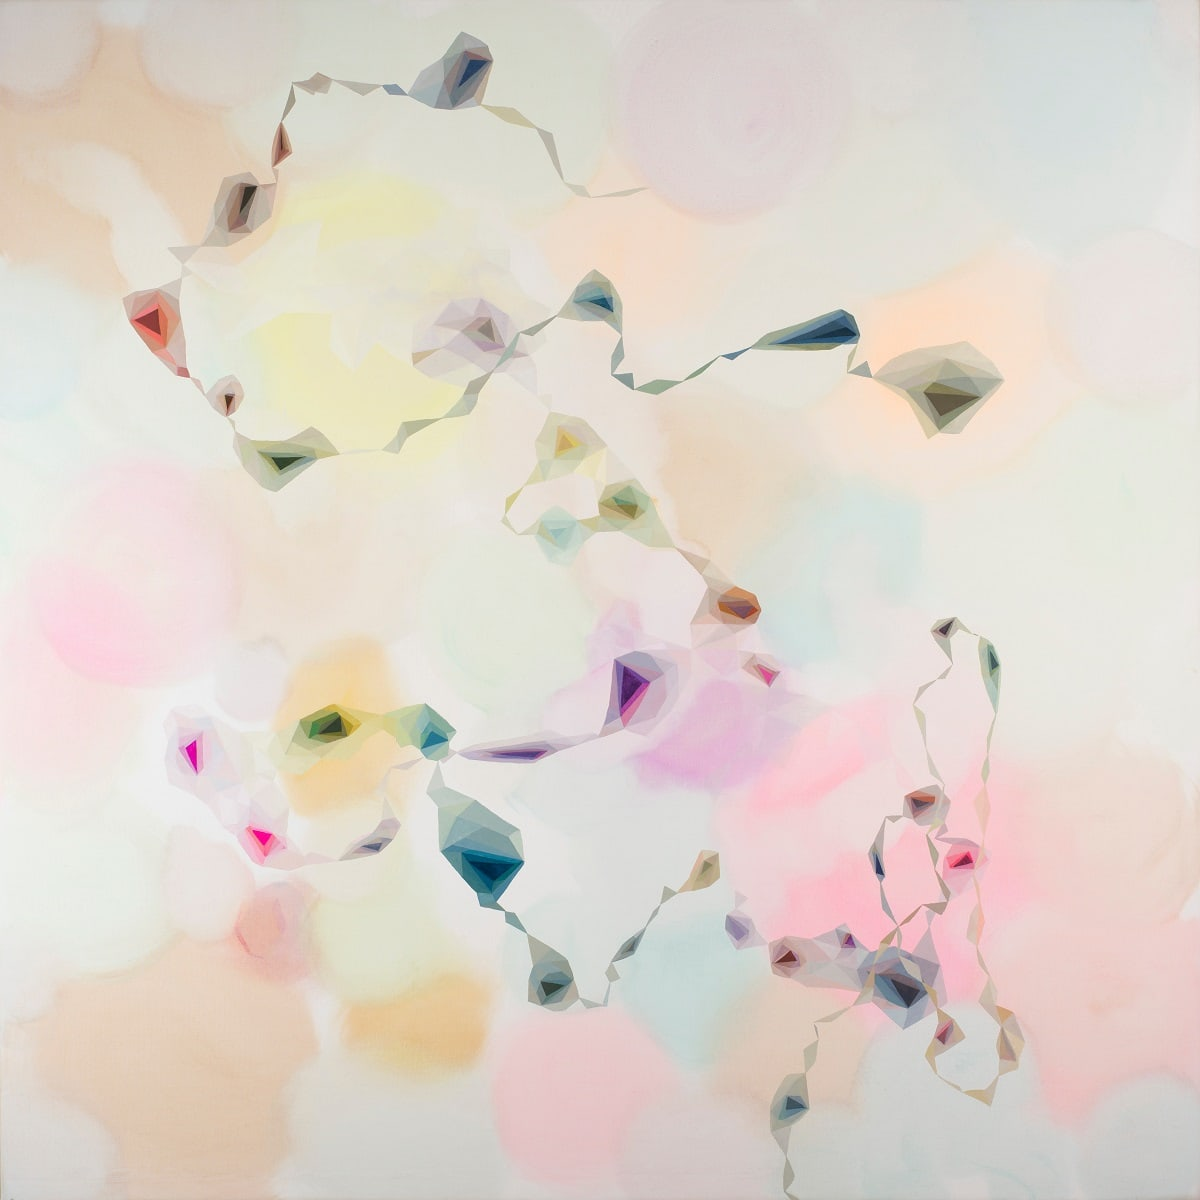 Lyndal Hargrave, A Hundred Floating Wishes, 150 x 150cm